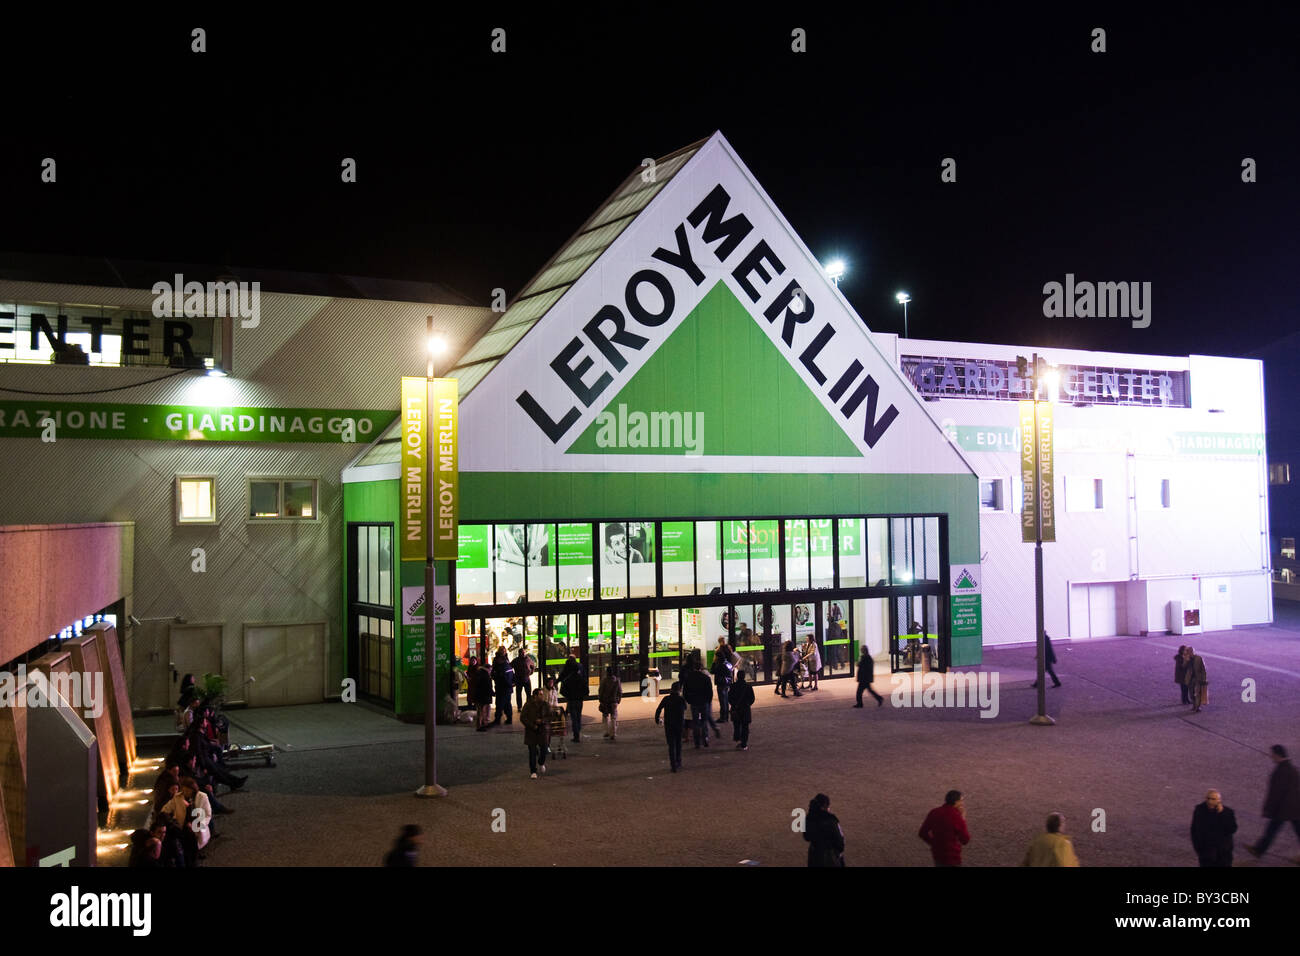 Leroy Merlin Store Stock Photos Leroy Merlin Store Stock Images